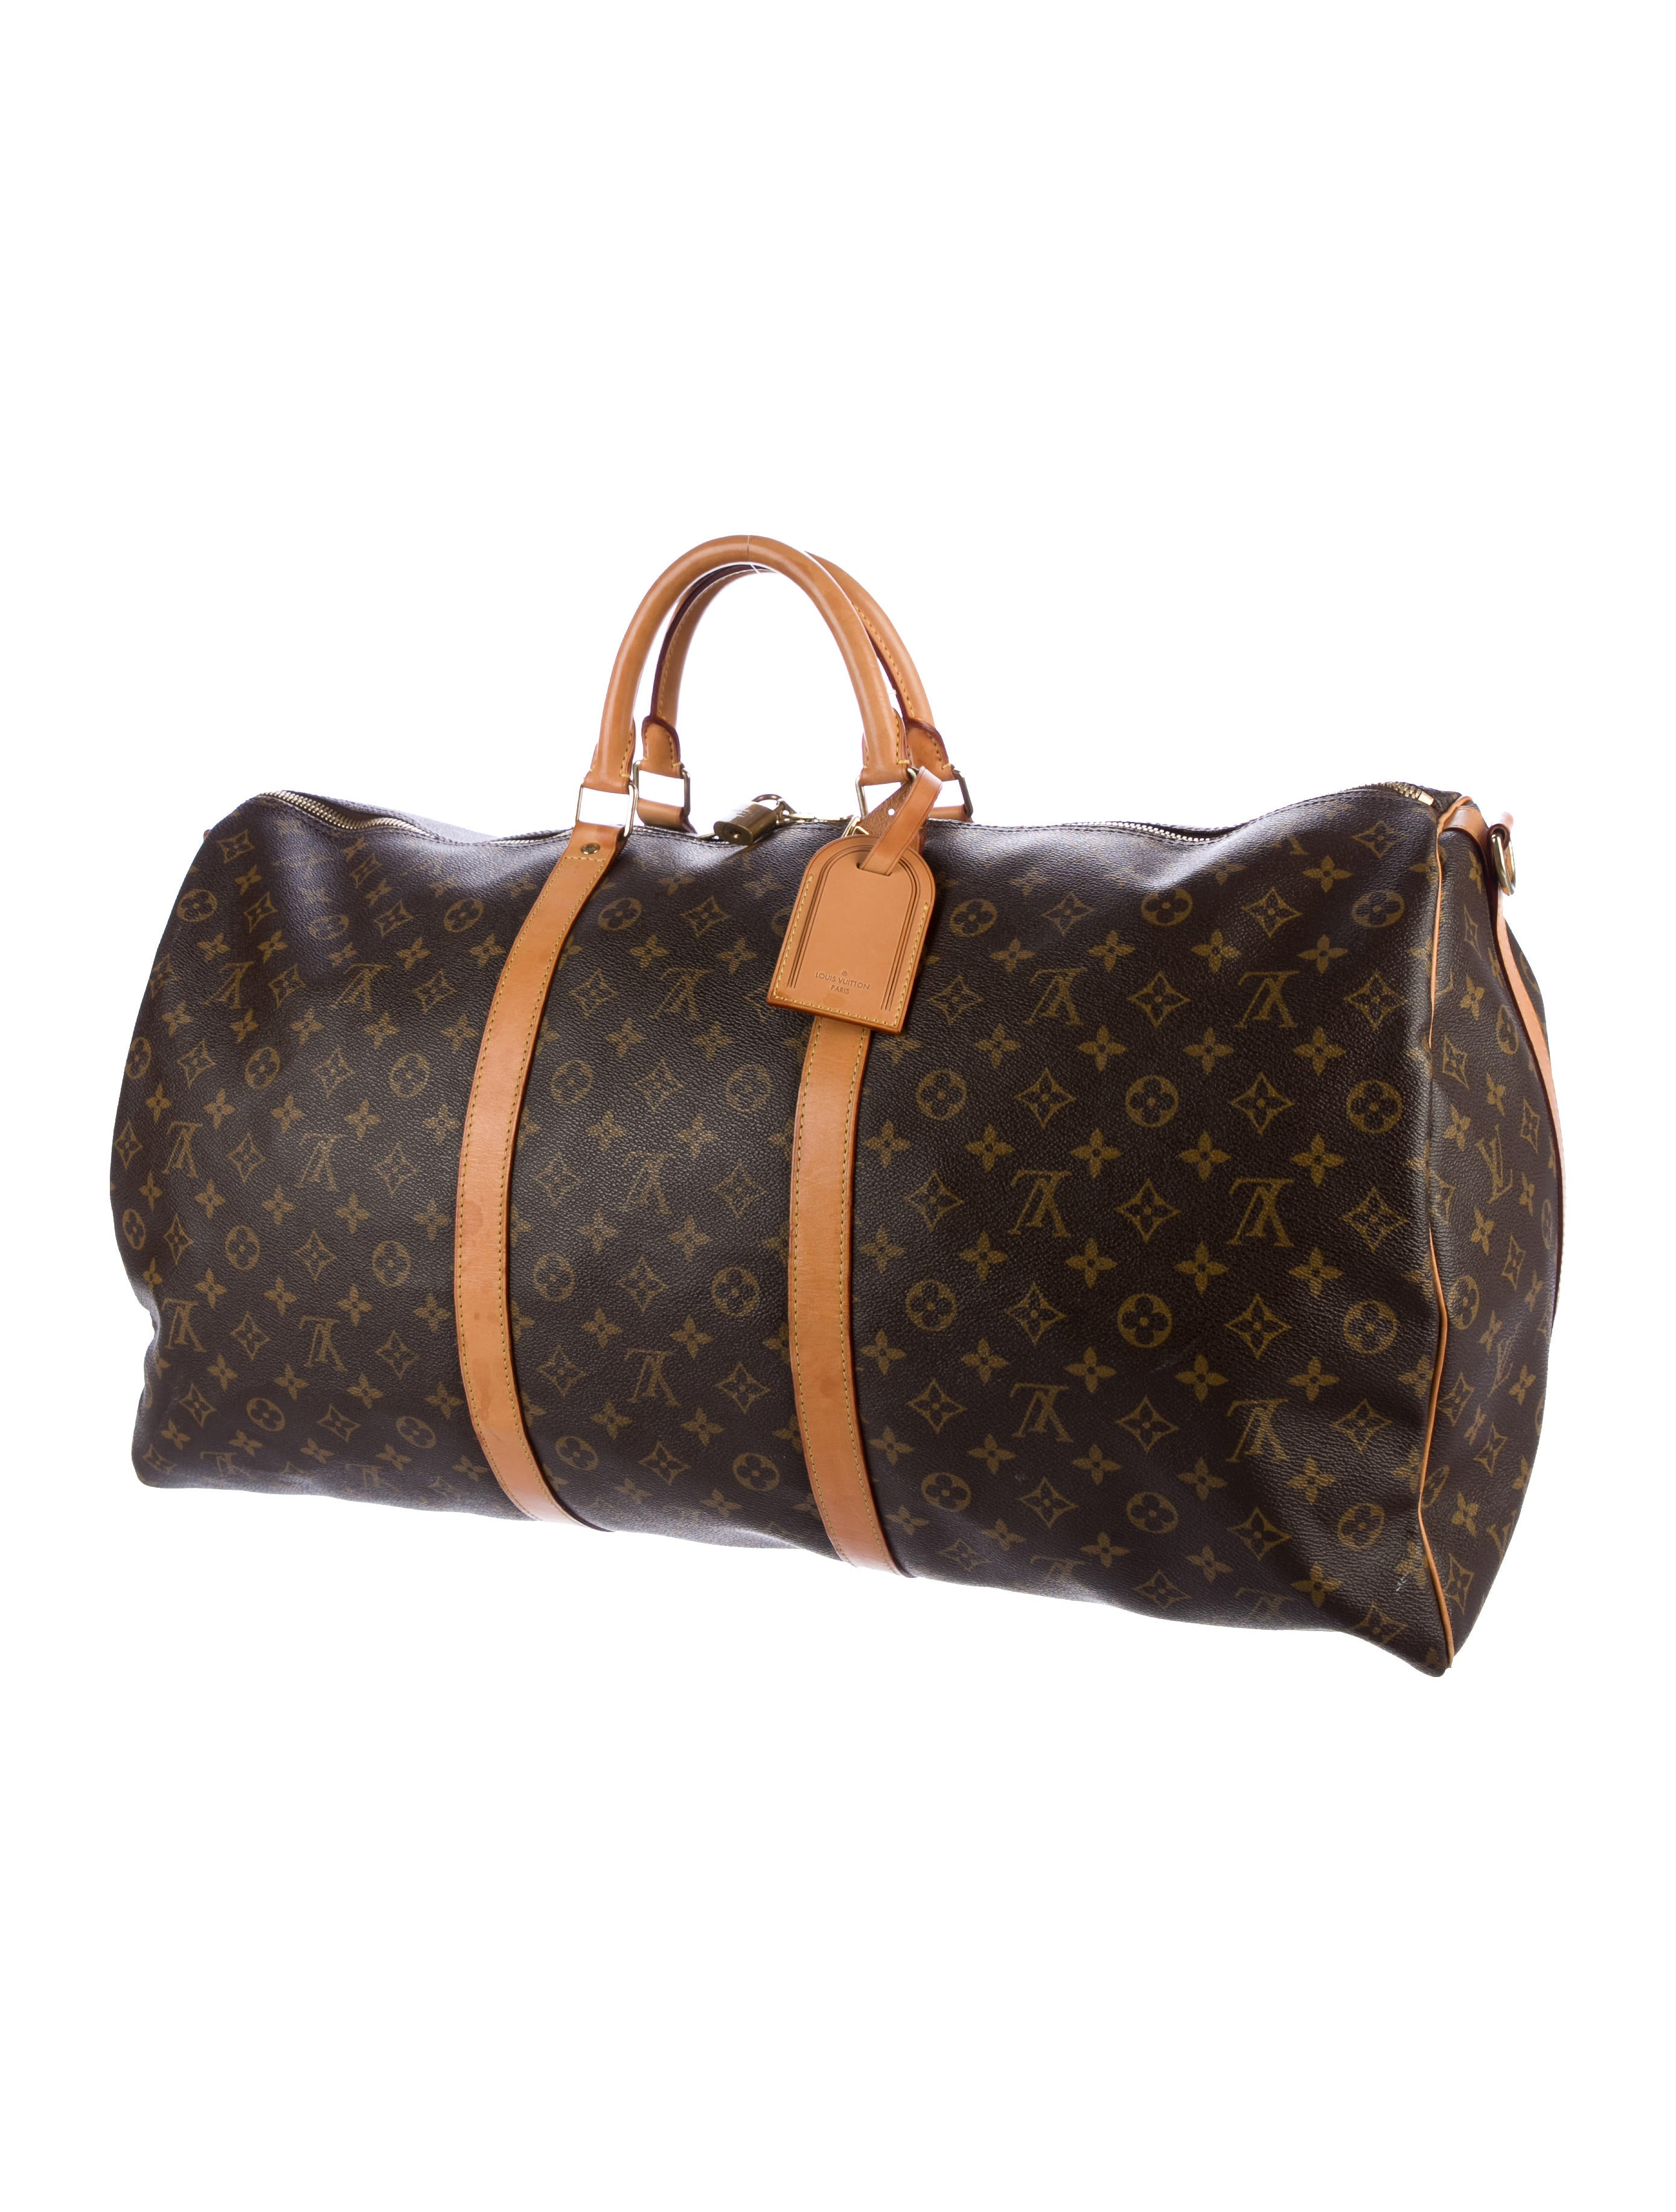 louis vuitton monogram keepall bandouli re 60 bags lou124139 the realreal. Black Bedroom Furniture Sets. Home Design Ideas